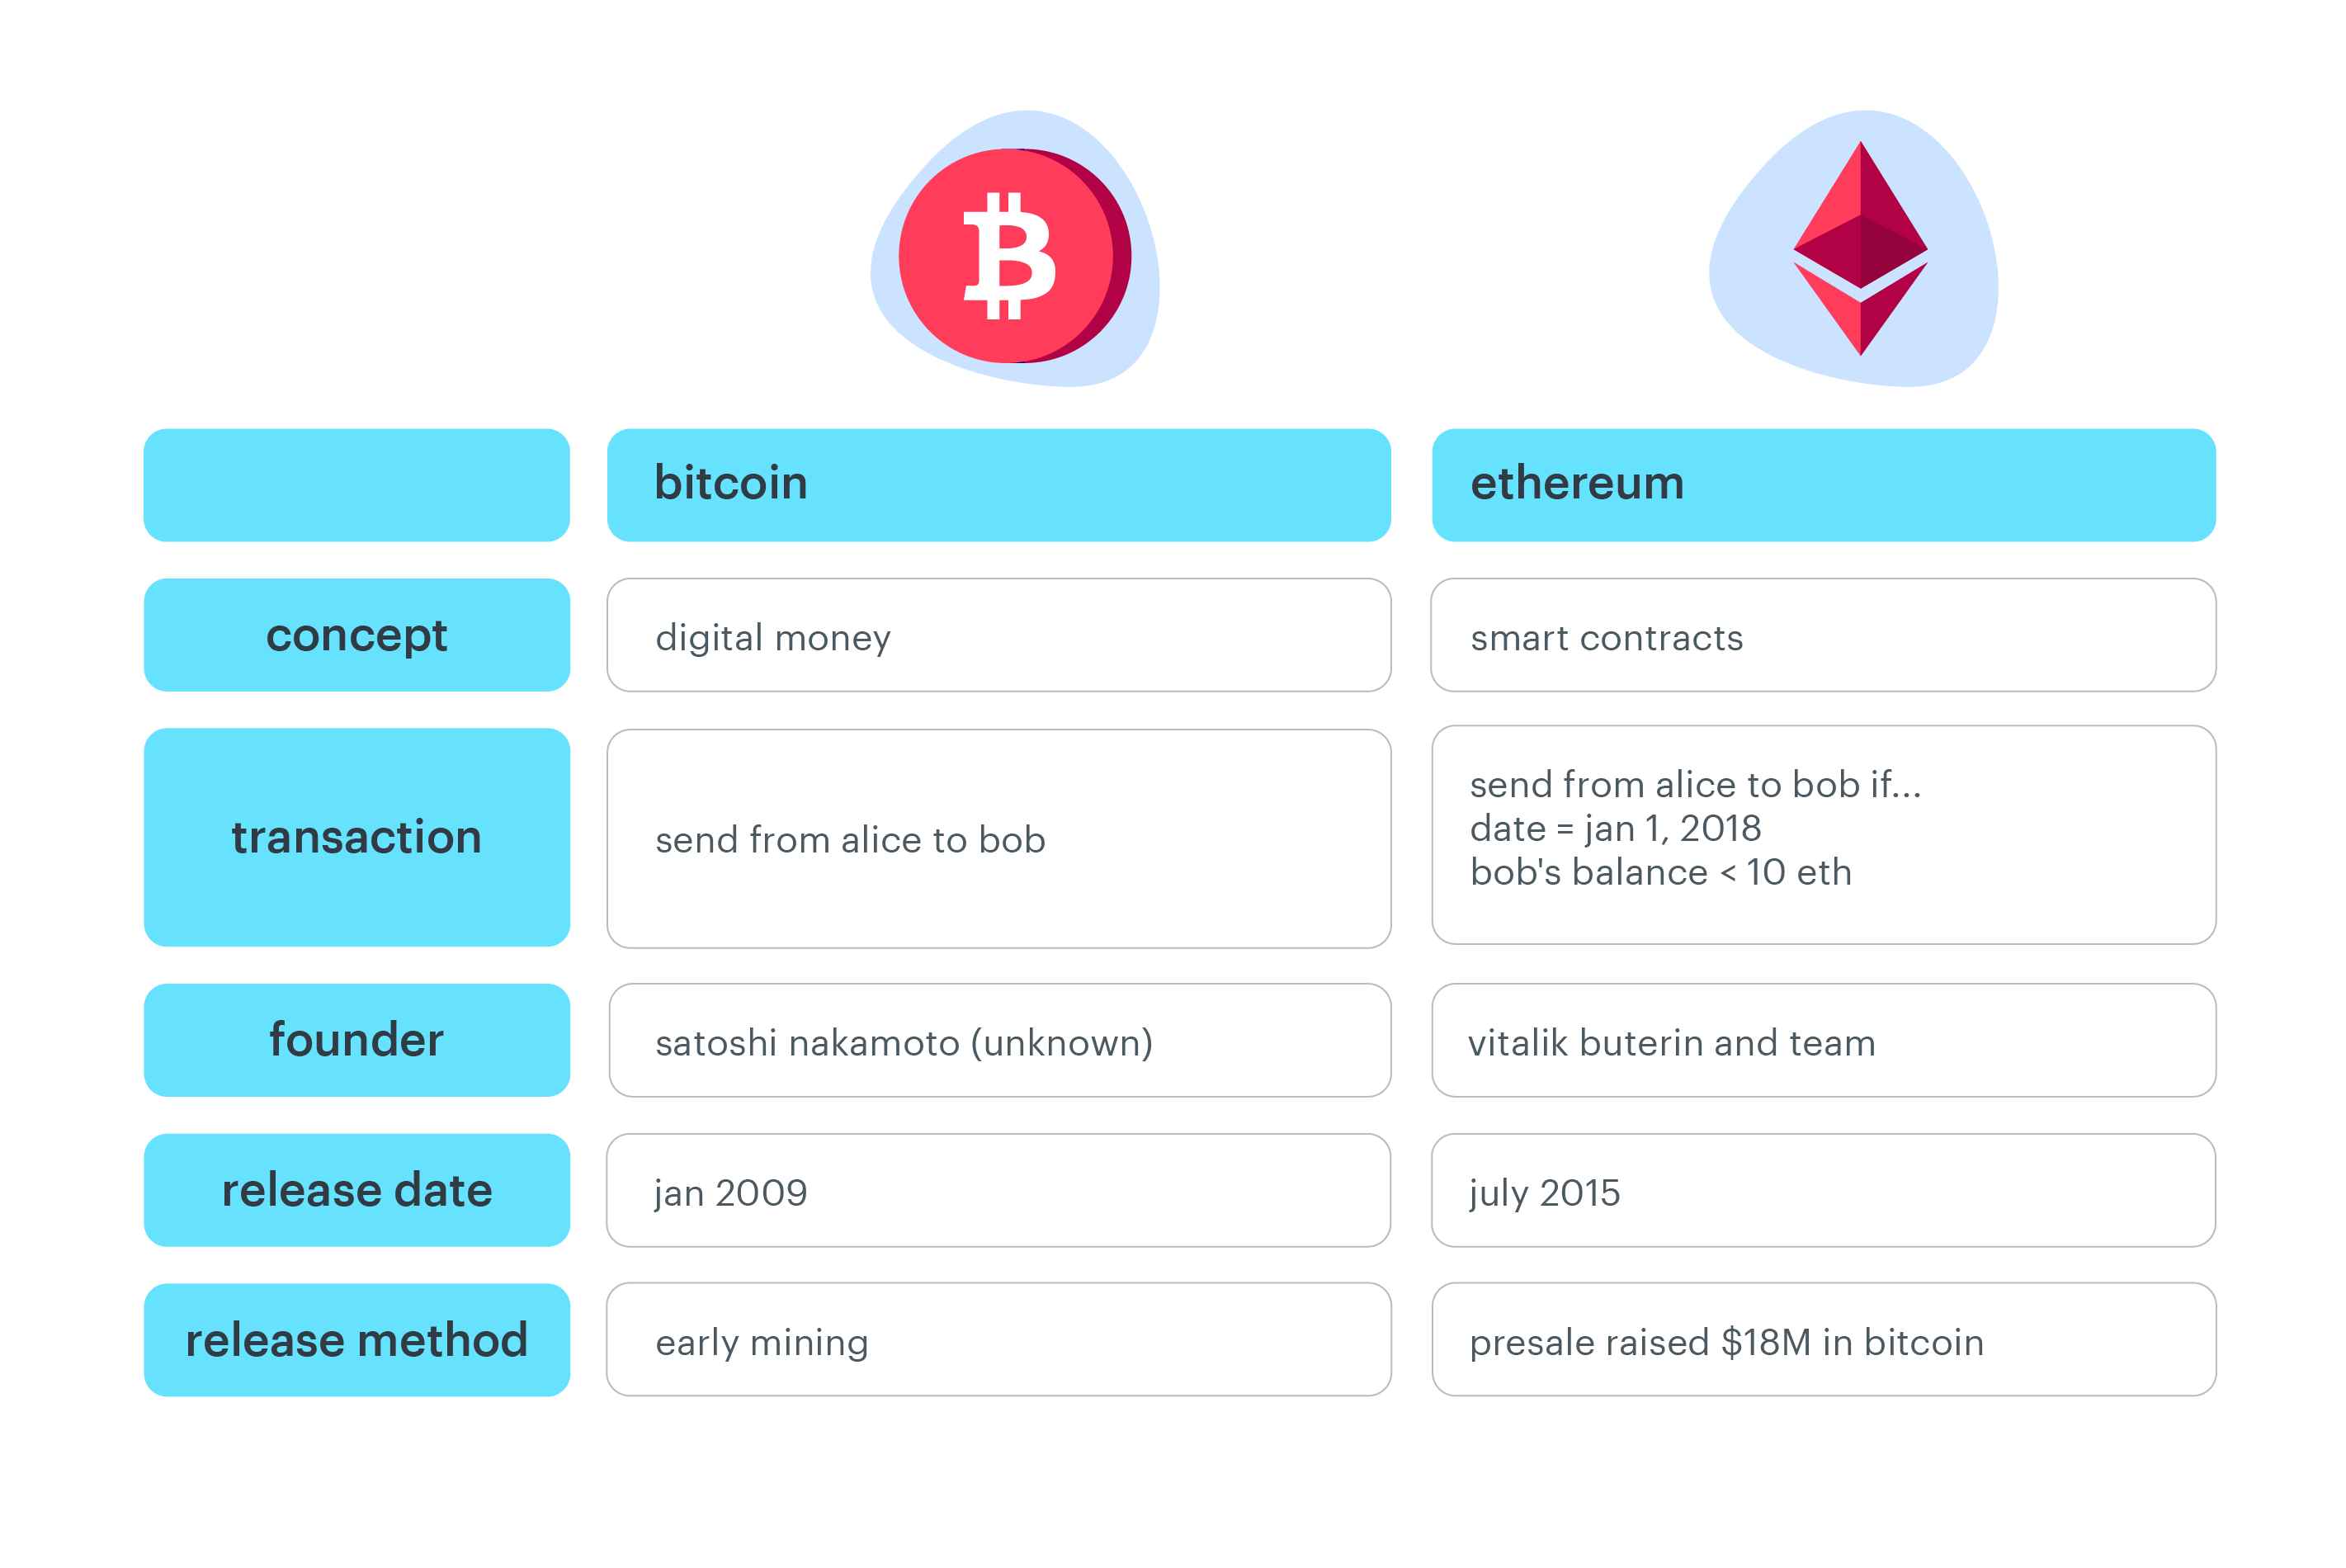 bitcoin-and-ethereum-comparison.png